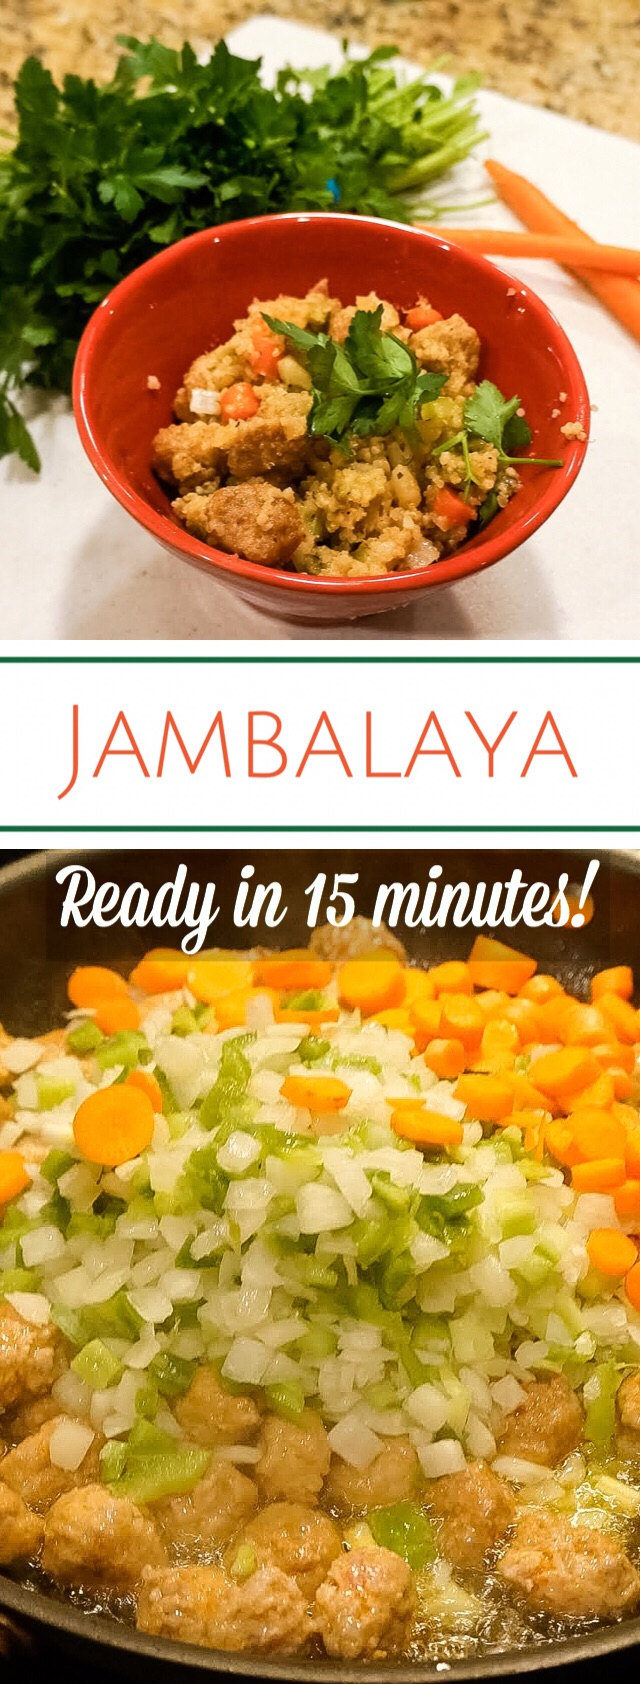 Enjoy this fabulous and little bit different jambalaya in 15 minutes! Its a super easy recipe packed with flavor that everyone will be asking seconds for!  Ingredients:  1 cup quinoa  1 lb andouille sausage, sliced into coins  3 tbsp olive oil  1/2 cup onion, chopped  1/2 cup pepper, chopped  1/2 cup celery, chopped  **1/2 cup carrots; sliced (optional)  1 tbsp garlic, minced  1 tsp oregano  flour; enough to make a roux, so anywhere from 1 tbsp to 1/4 cup  chopped parsley to garnish (optional)